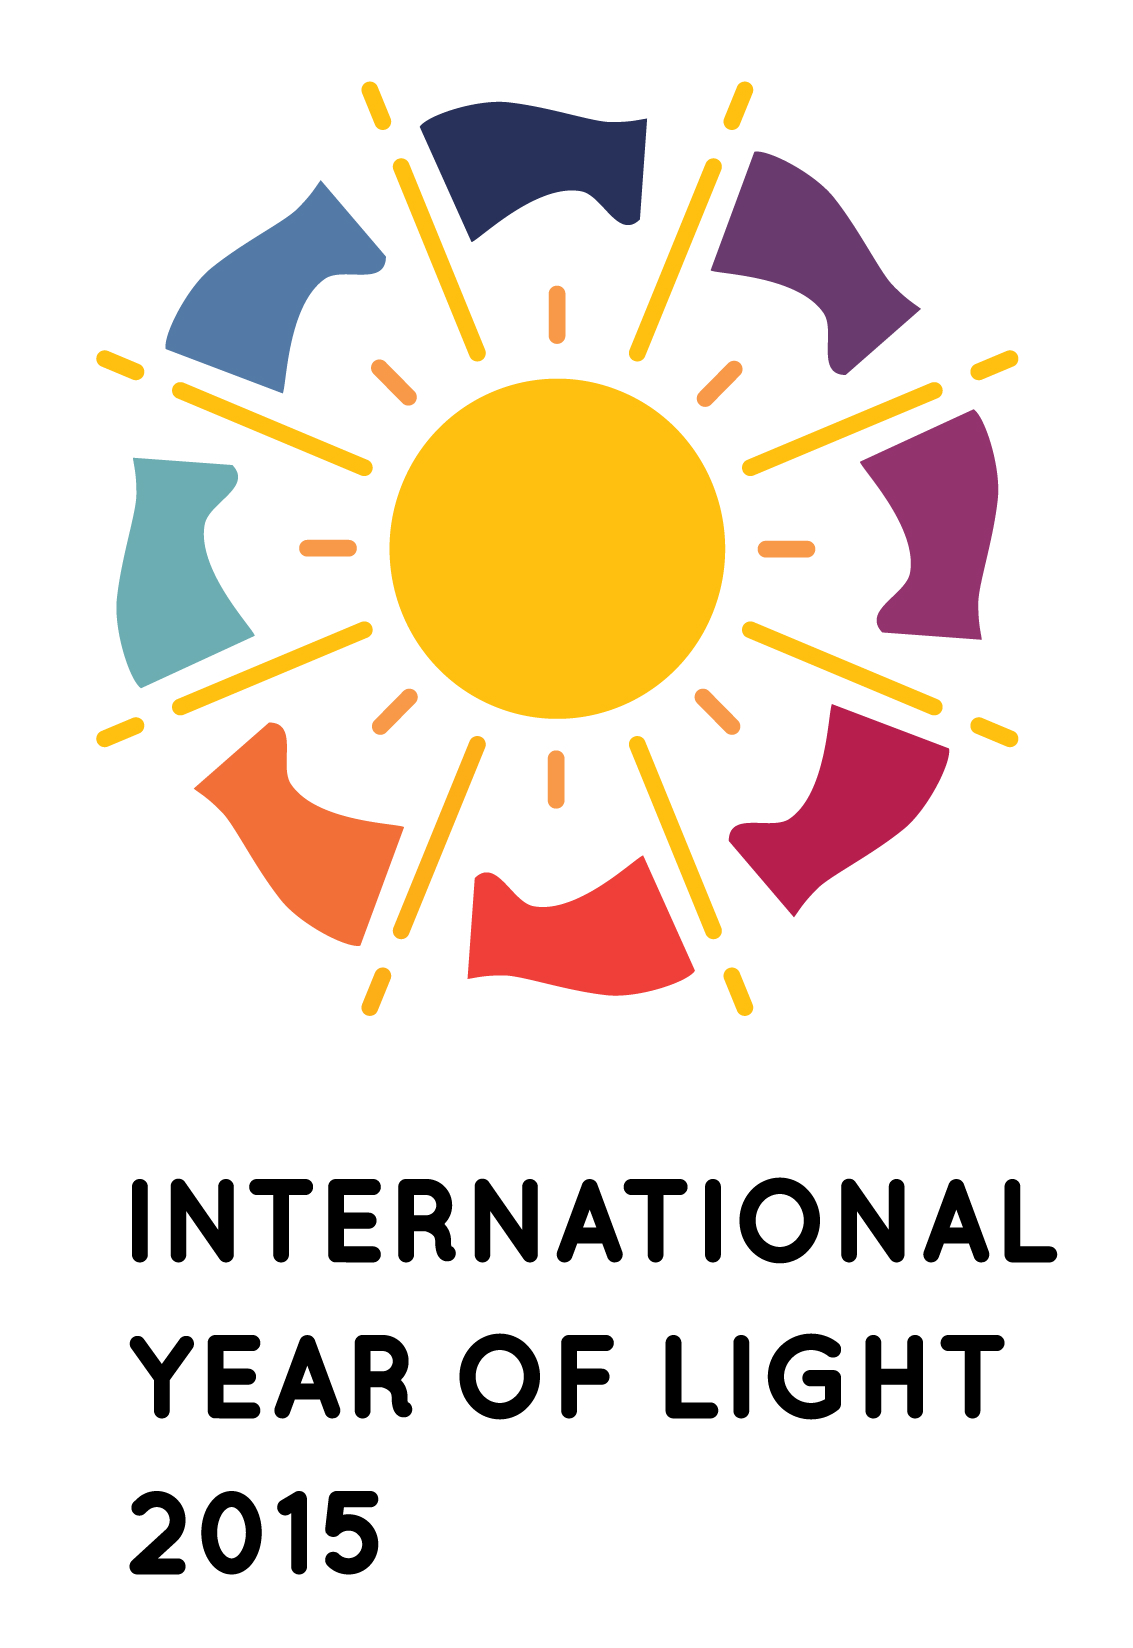 2015 – The International Year of Light